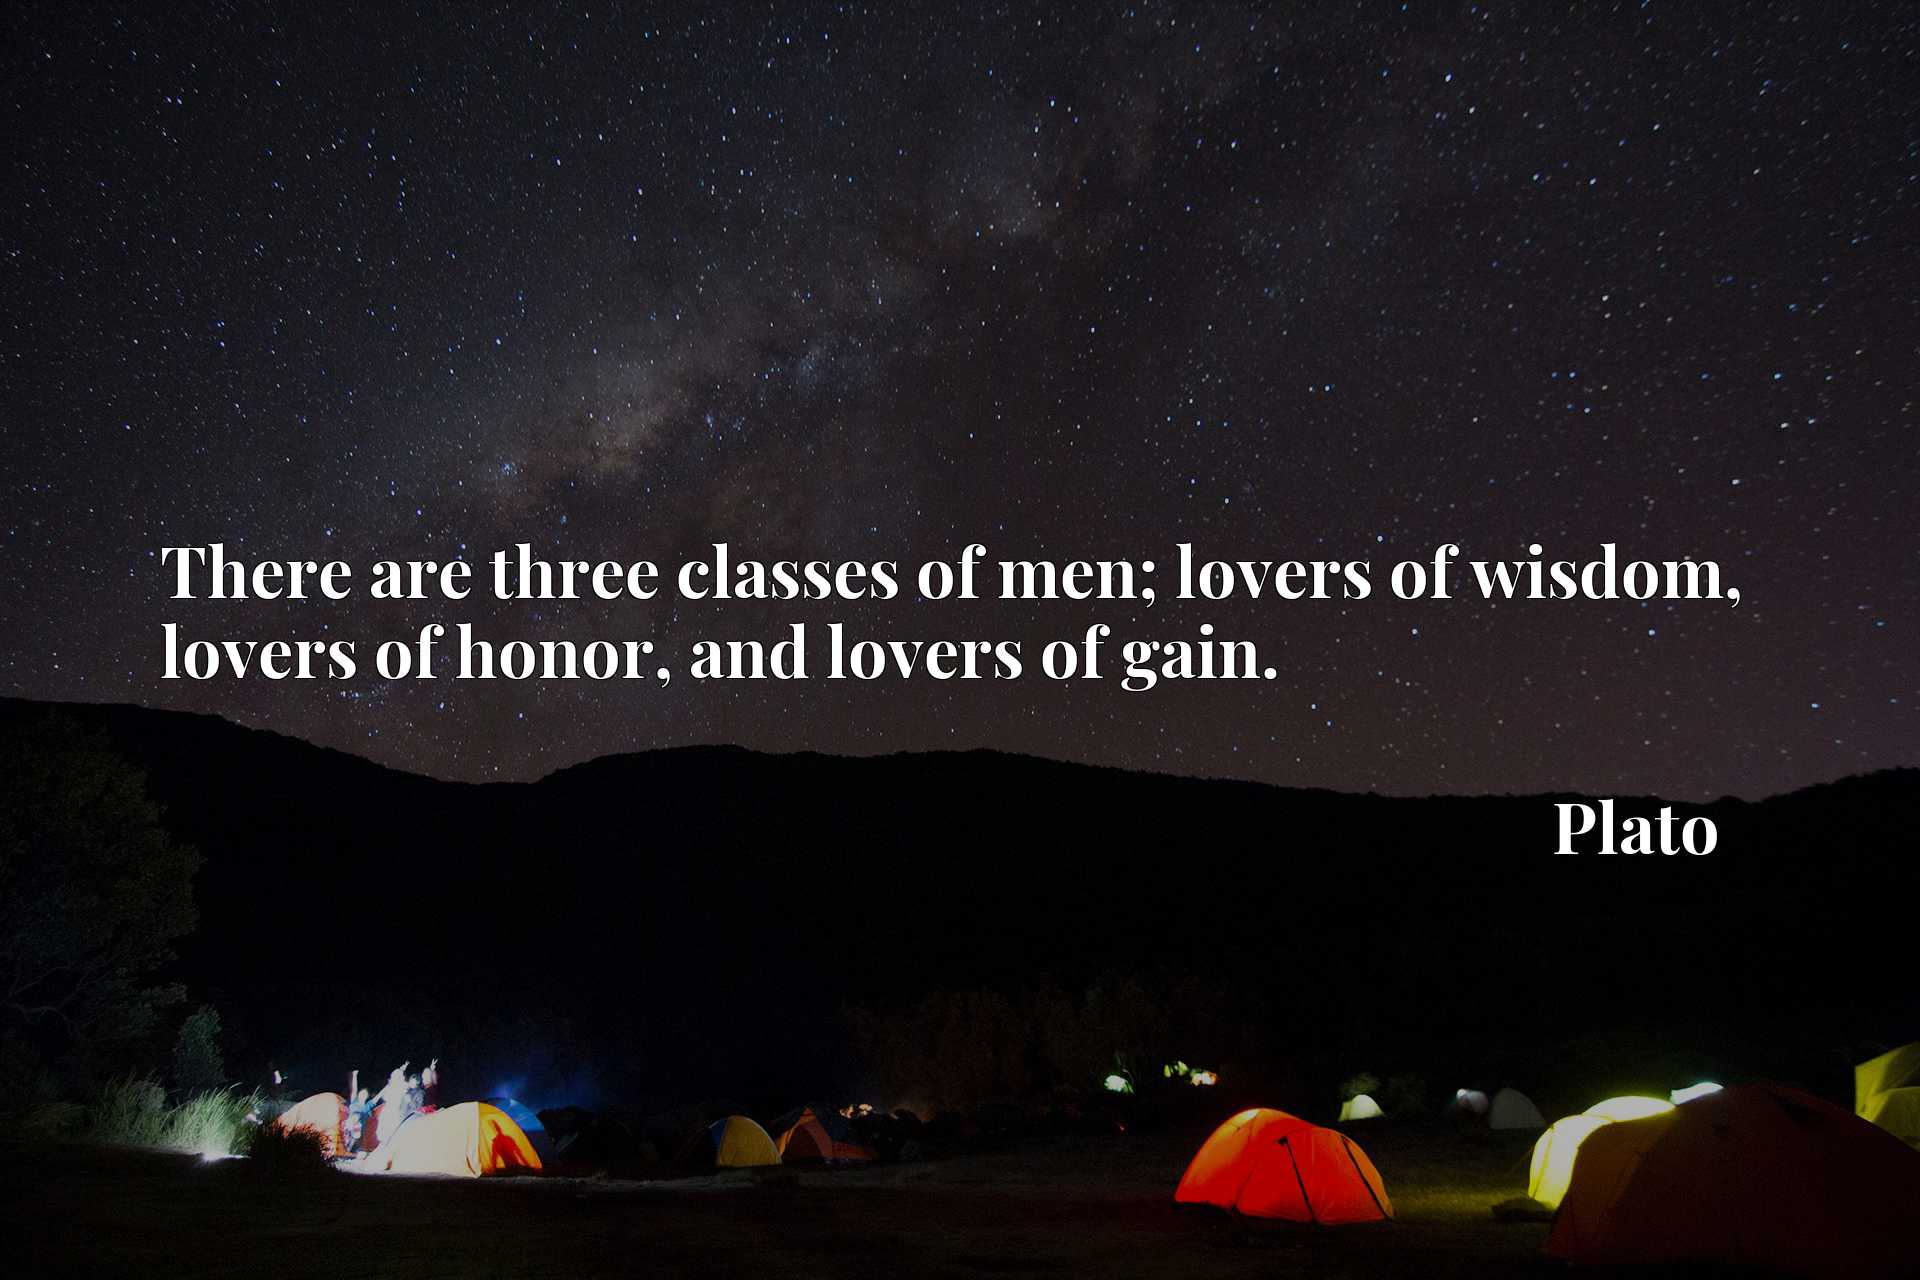 There are three classes of men; lovers of wisdom, lovers of honor, and lovers of gain.